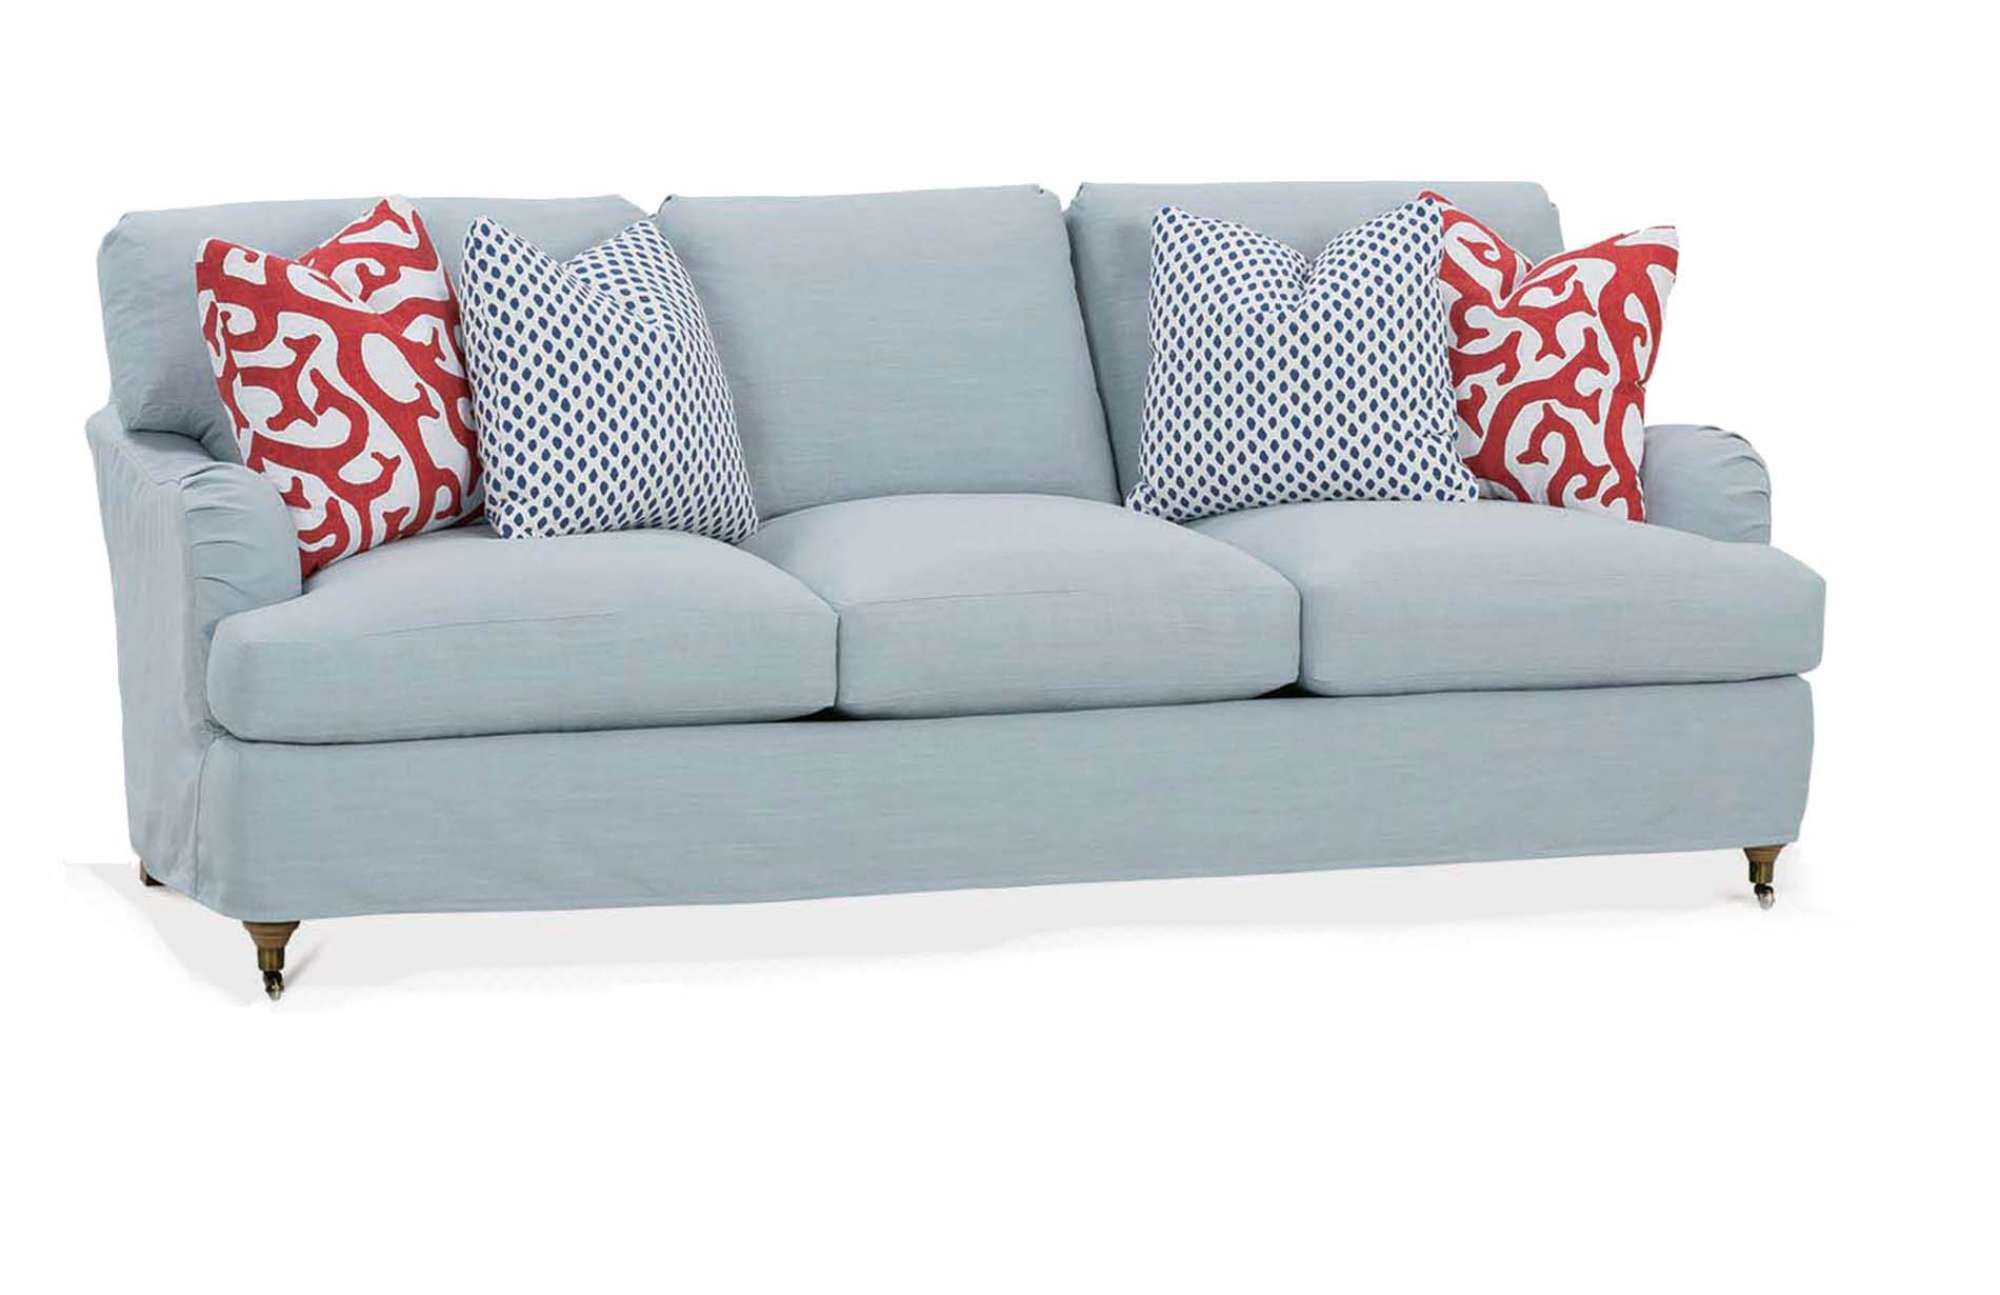 The brooke slipcover sofa offers a modern design that can blend in with most contemporary room themes customize the body pillowswelts and finish